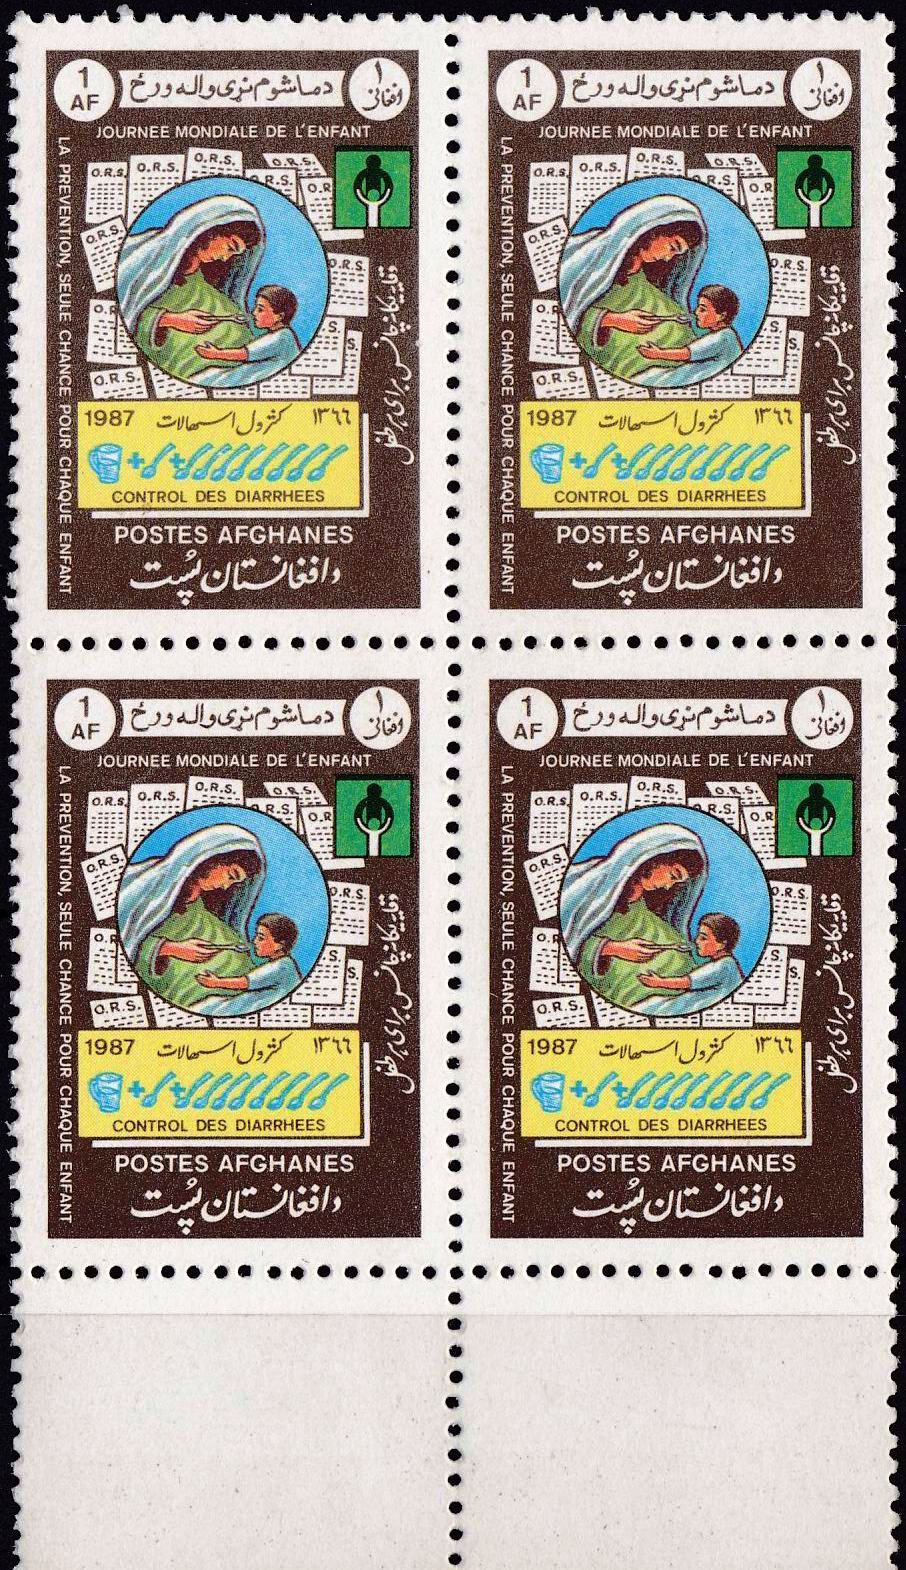 Afghanistan 1987 Stamps Child Survival Campaign